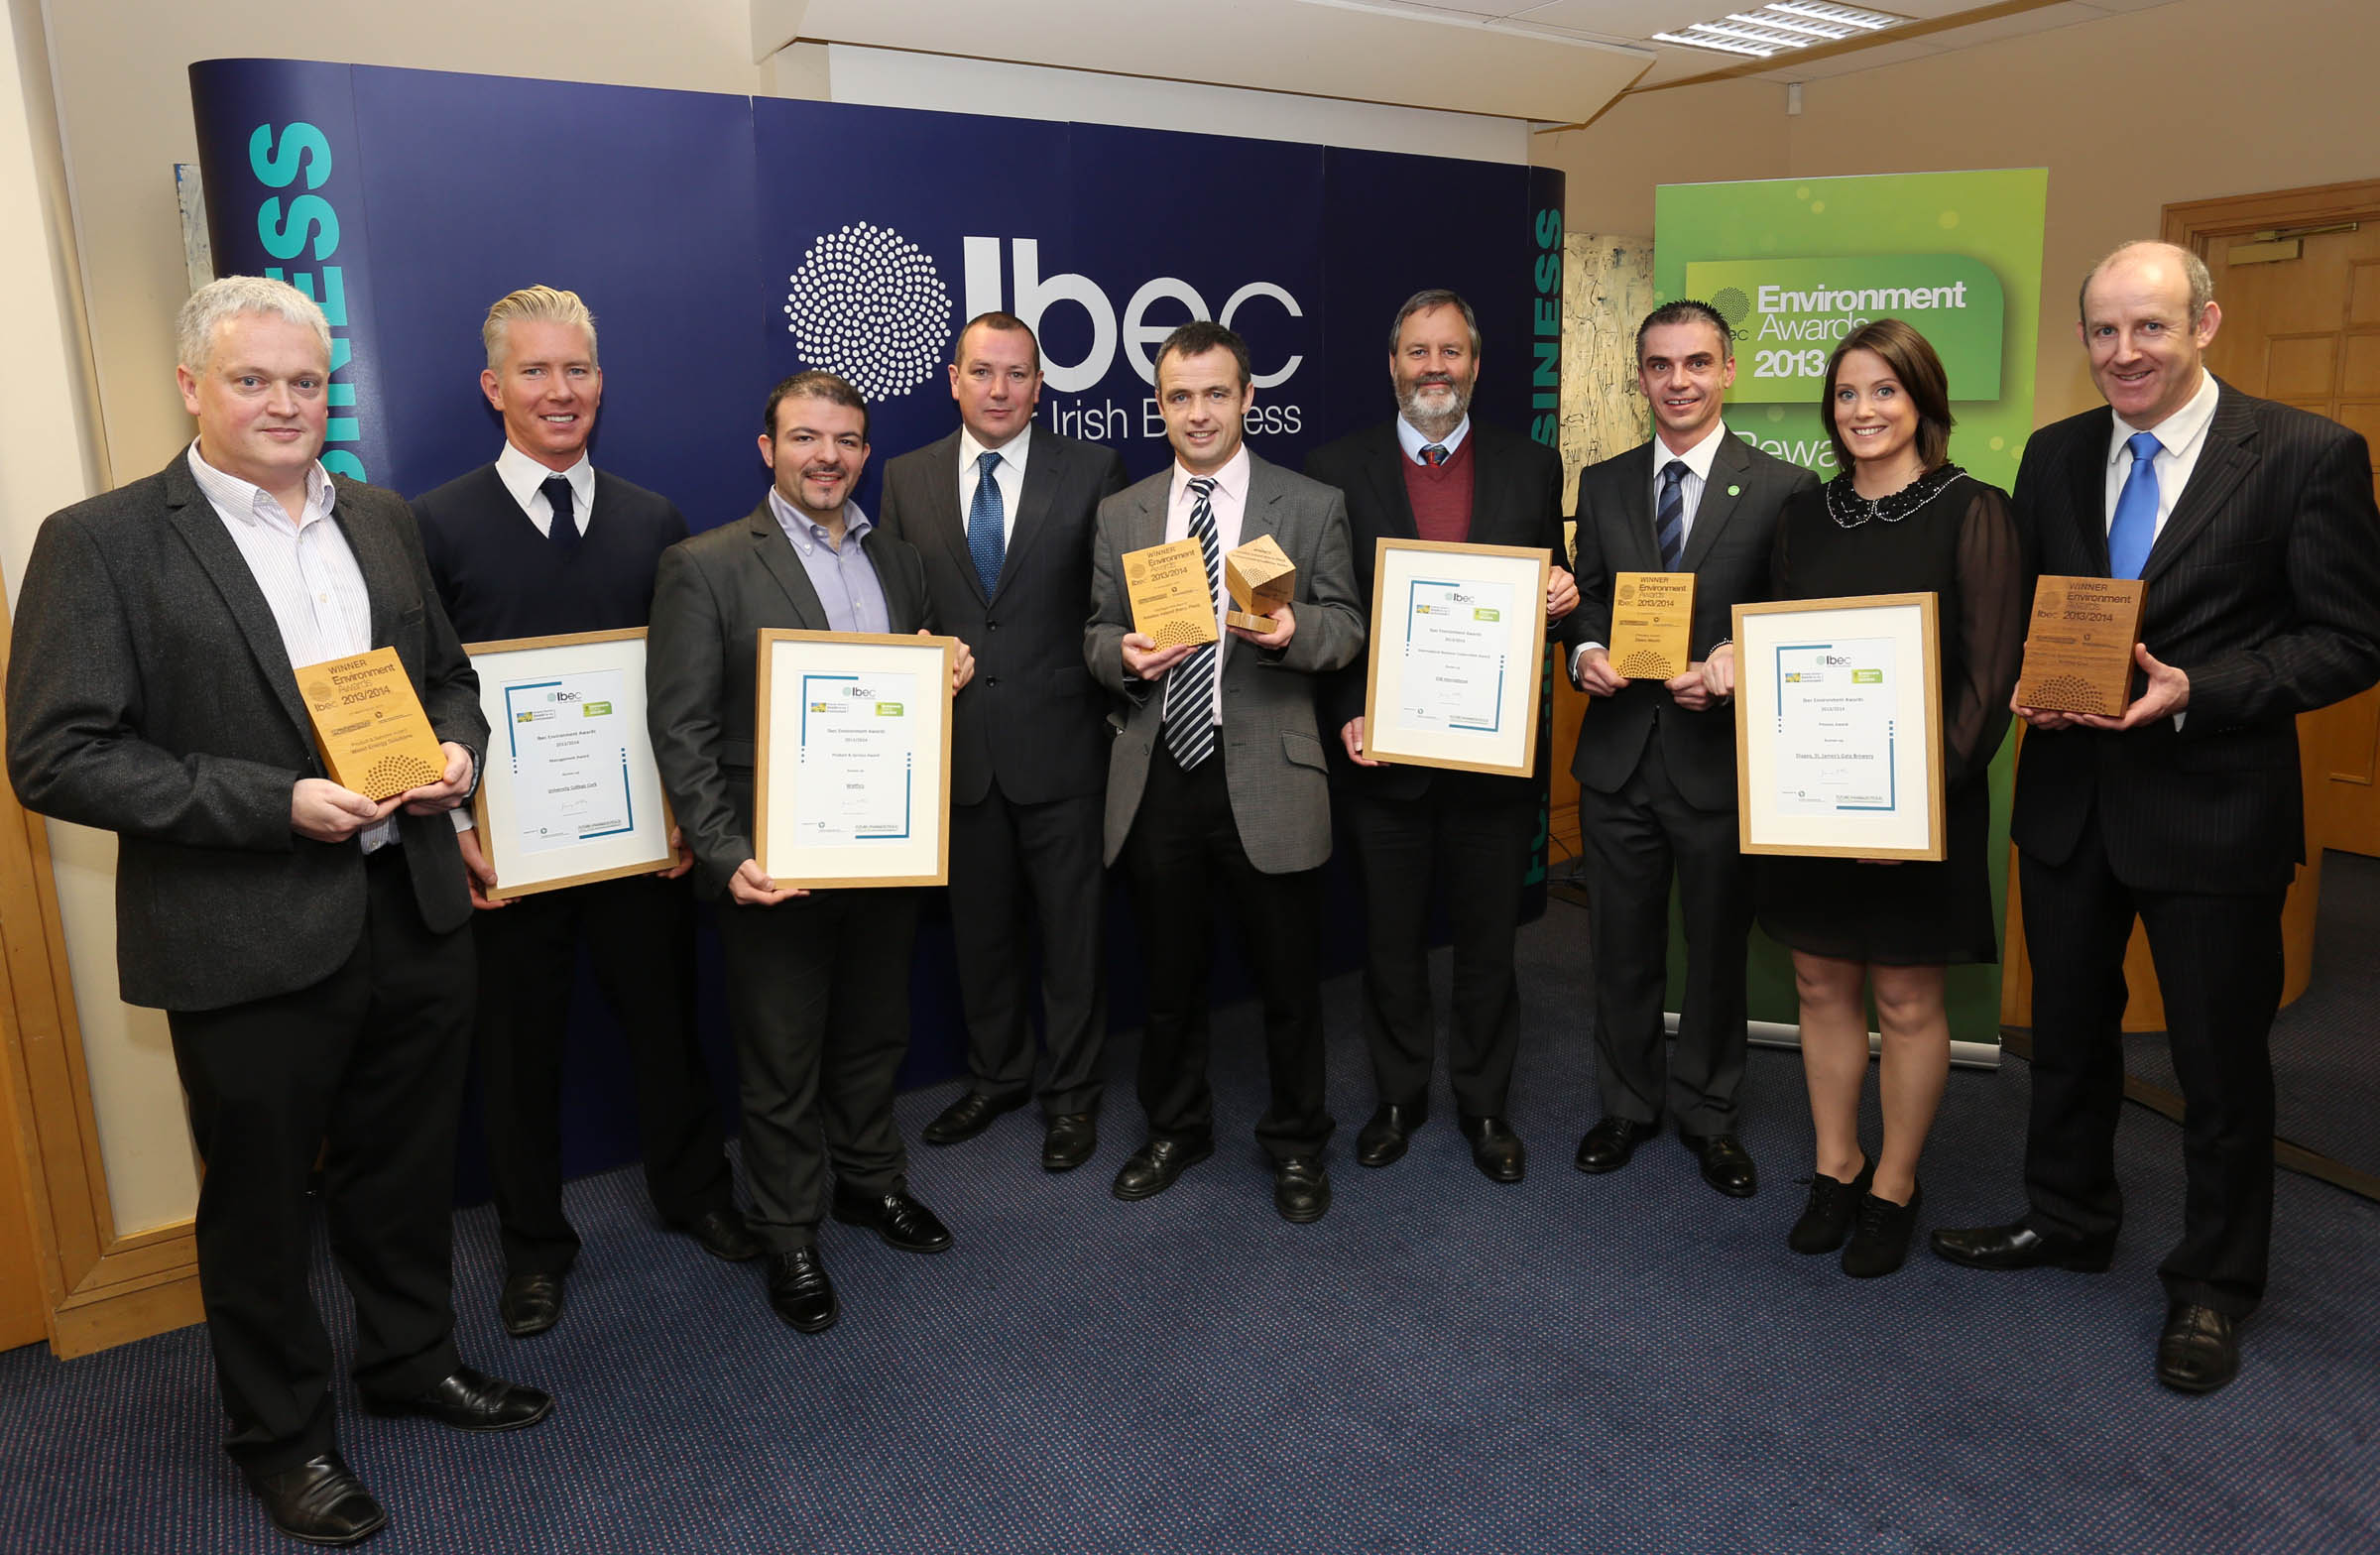 UCC receive IBEC award 2013 (runner up prize)